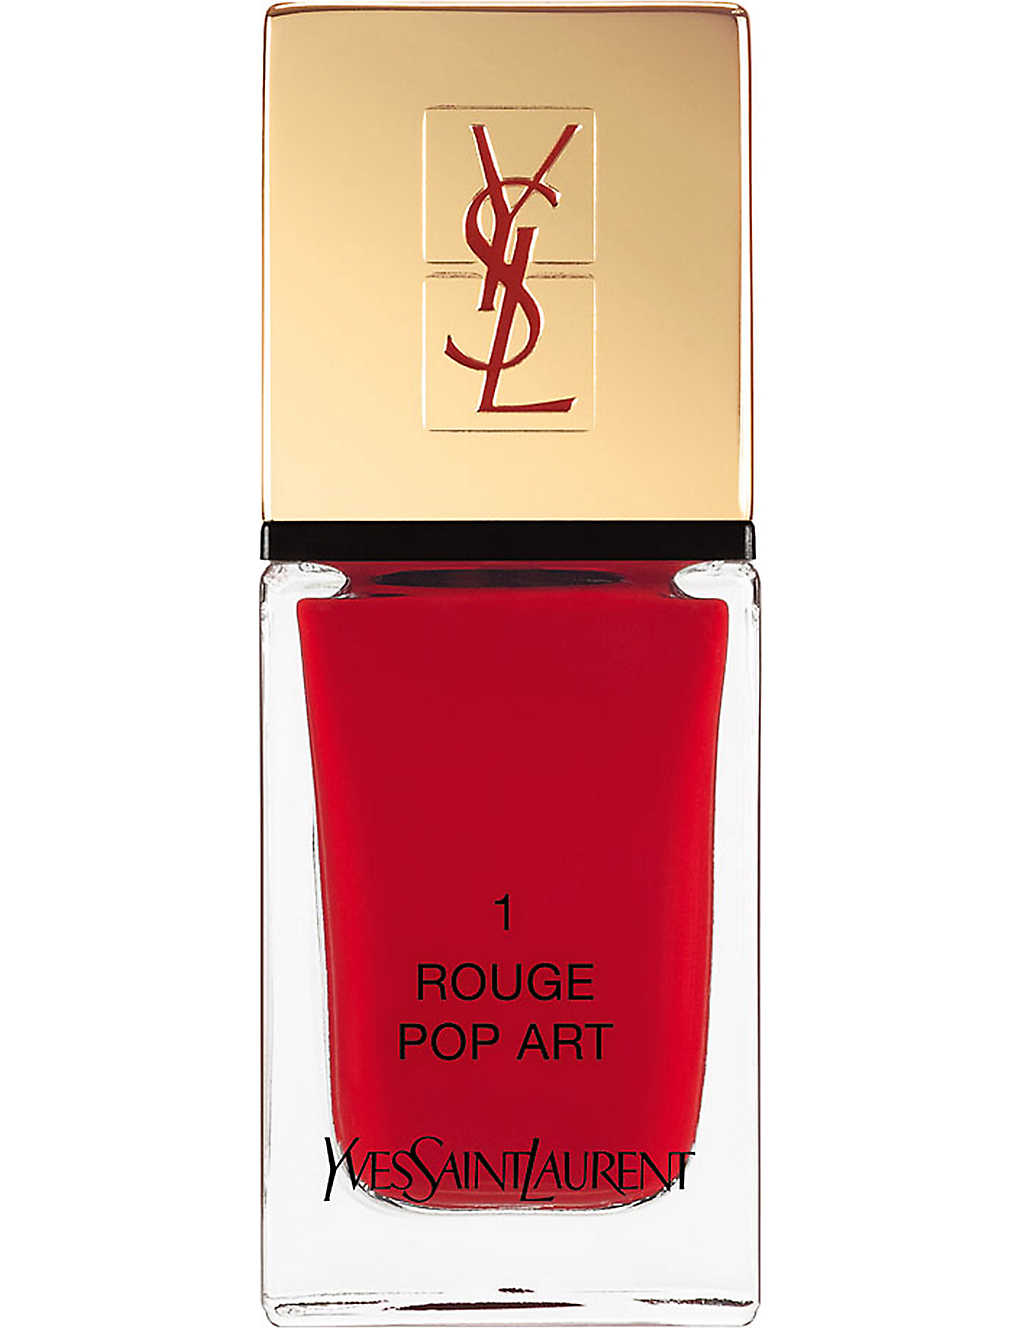 YVES SAINT LAURENT:La Laque 时装持久指甲油